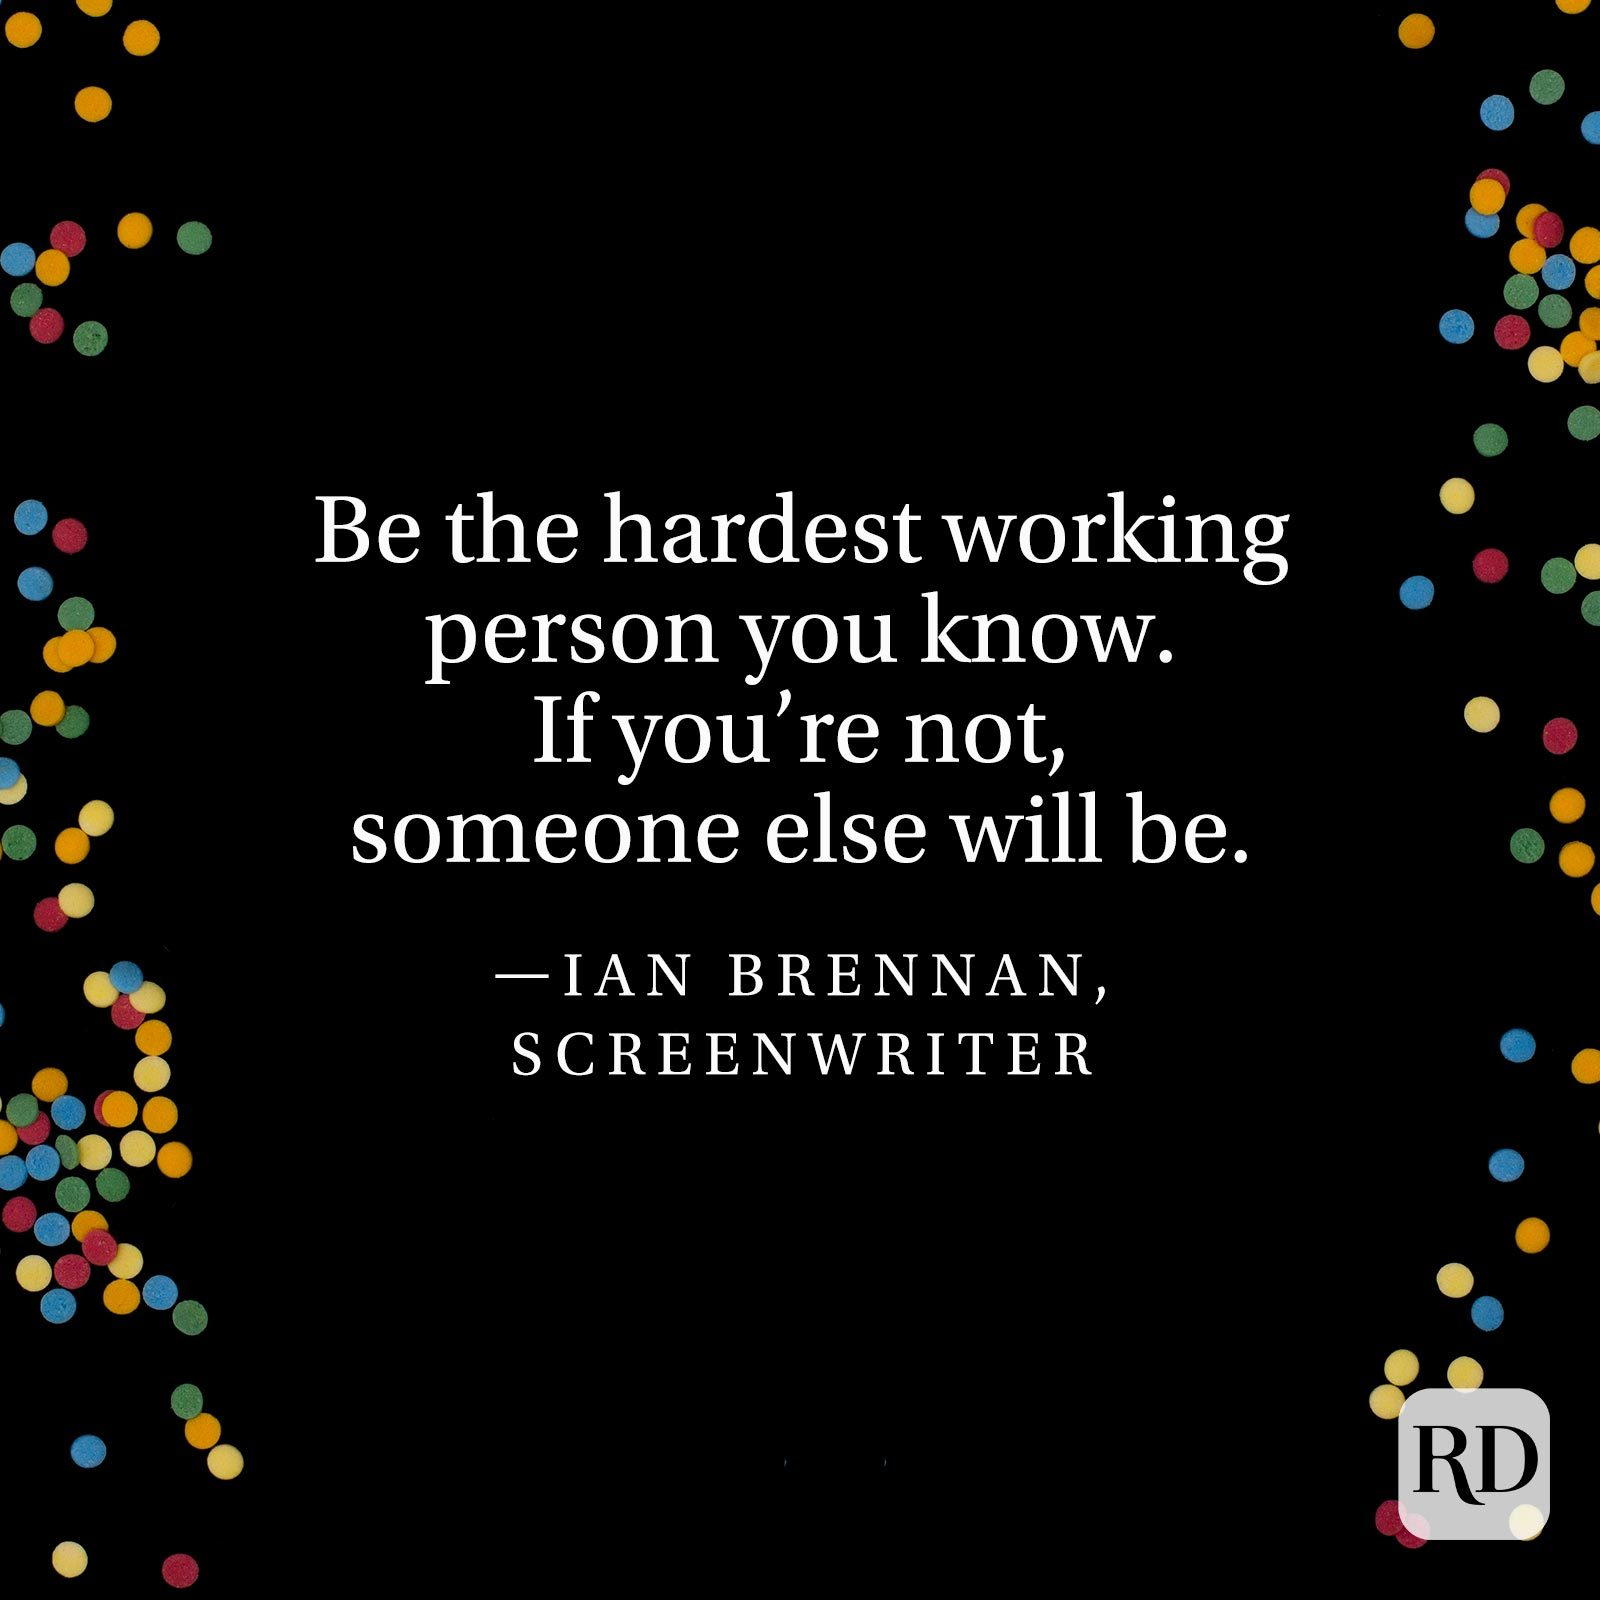 """Be the hardest working person you know. If you're not, someone else will be."" —Ian Brennan, screenwriter"